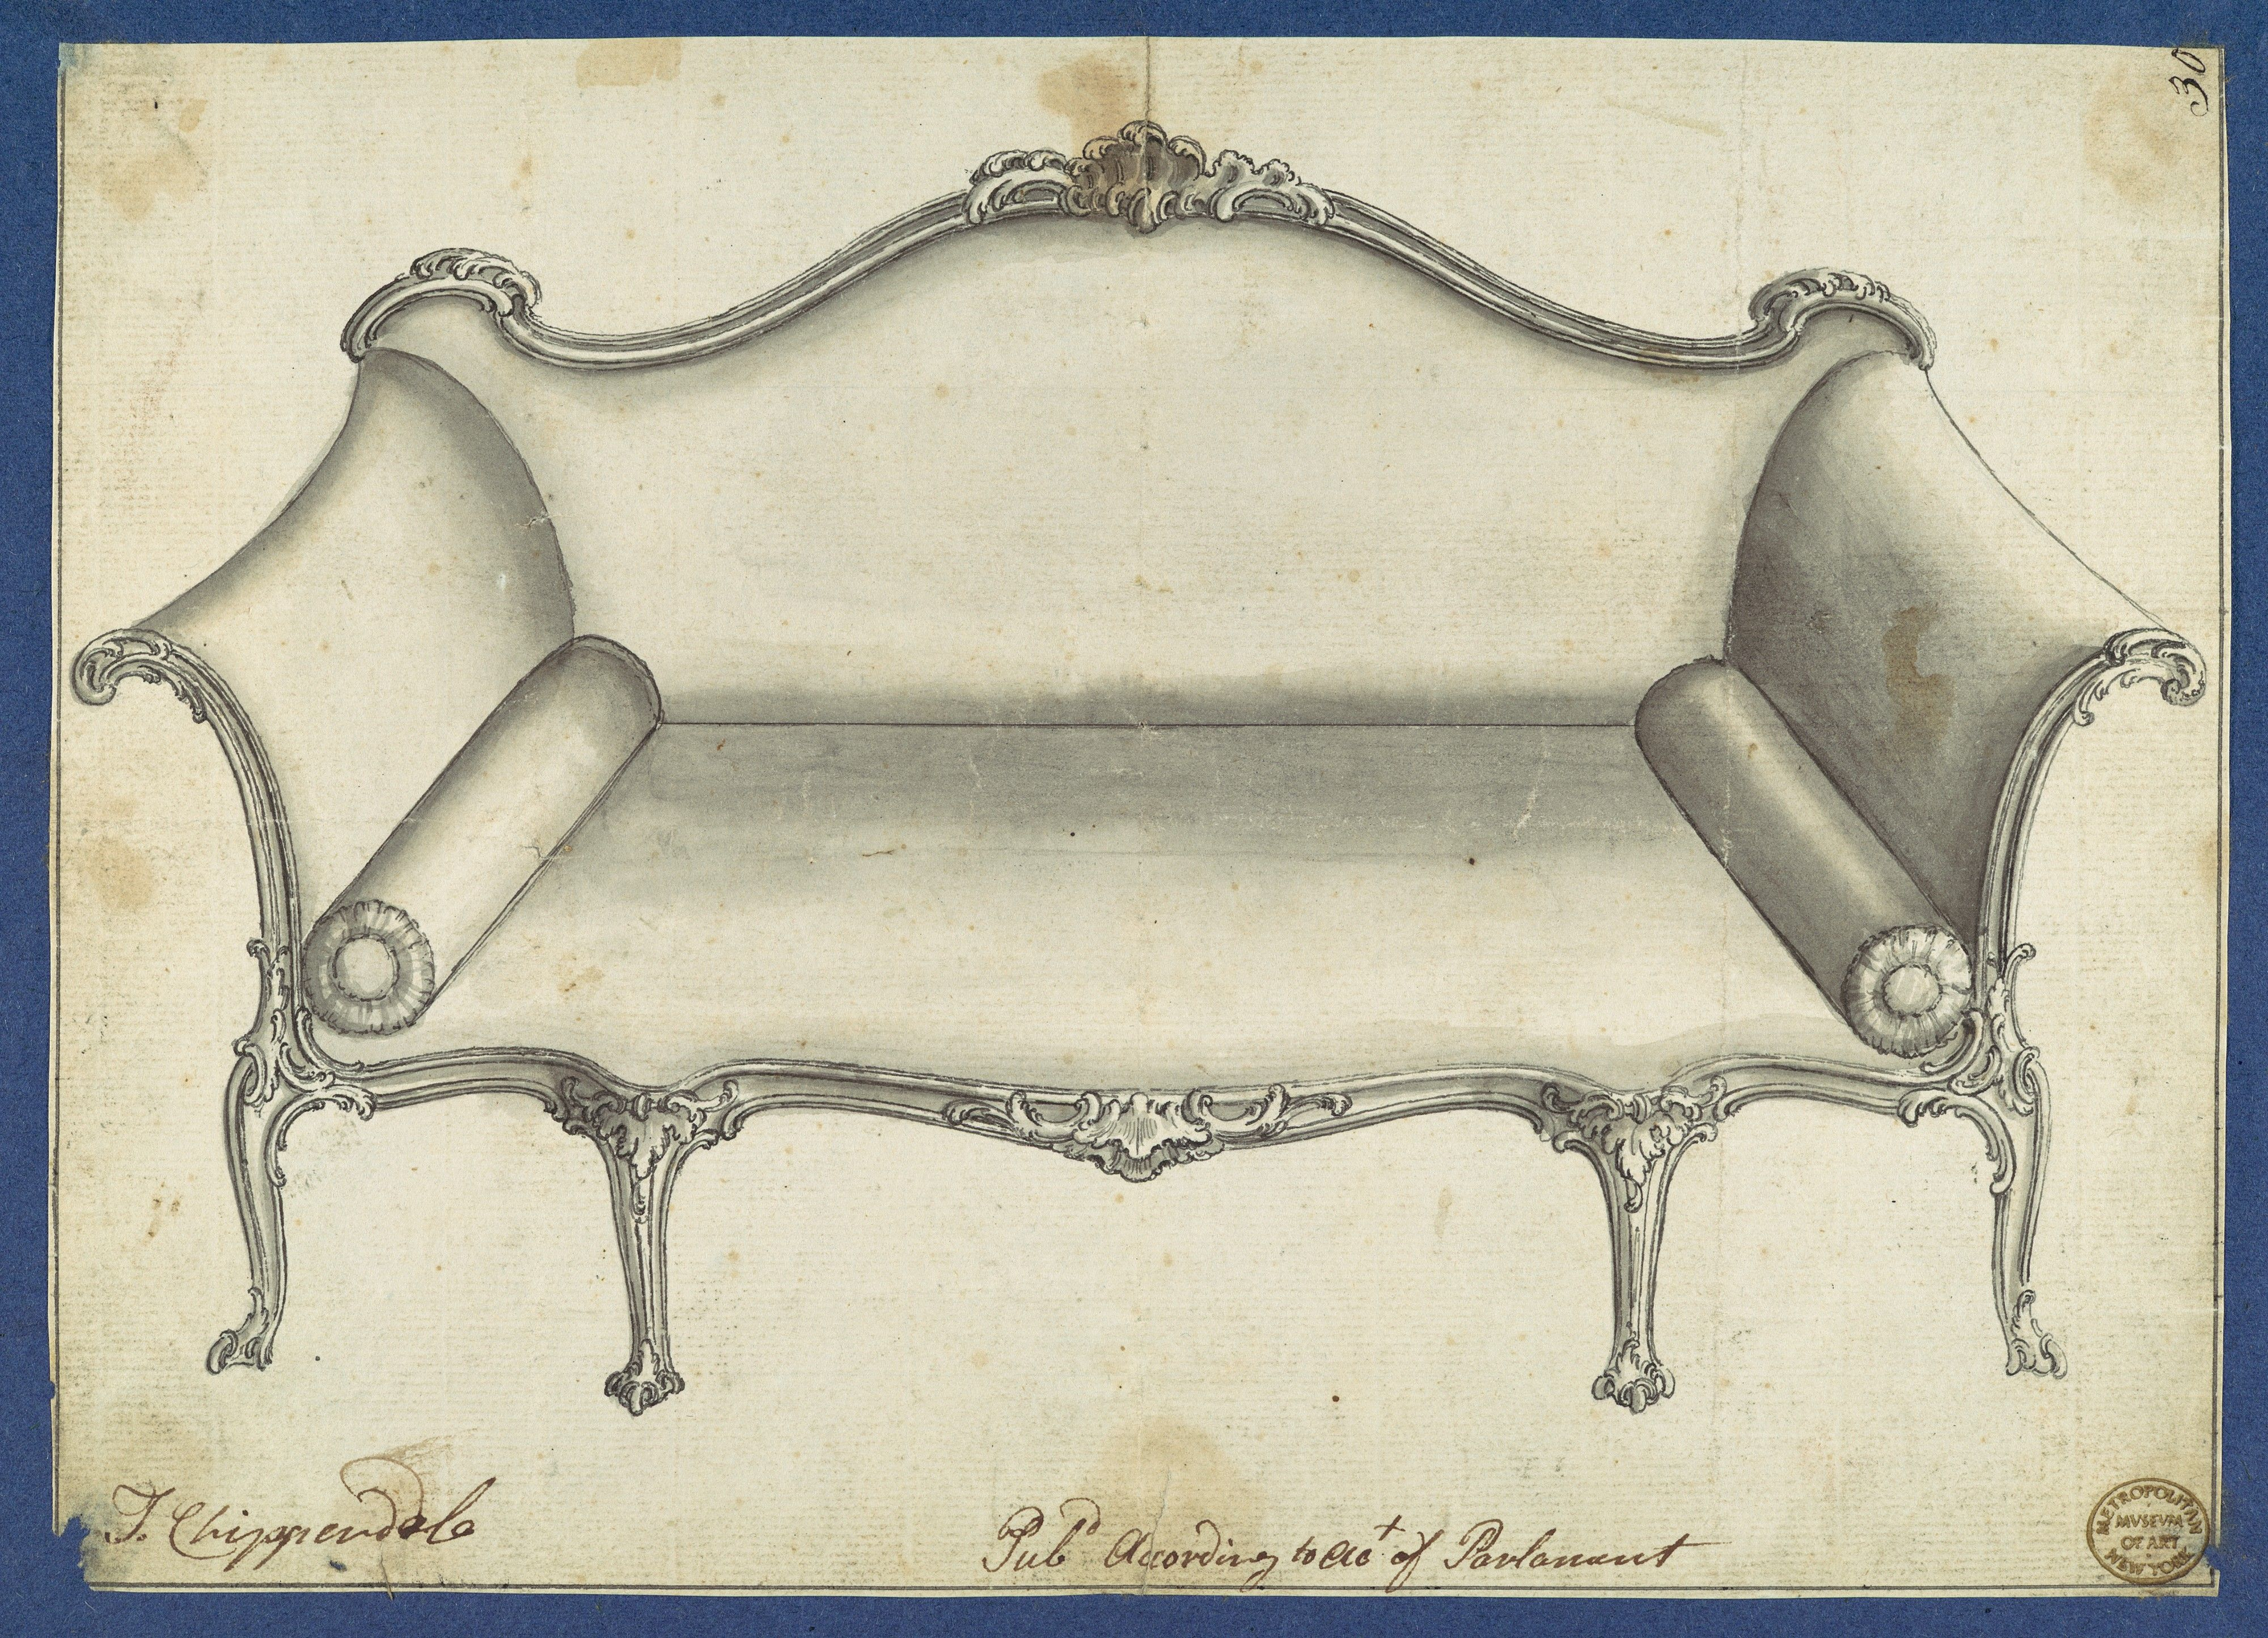 Chippendale sofaschippendale sofas - Chippendale Sofa Sofa From Chippendale Drawings Vol I Thomas Chippendale